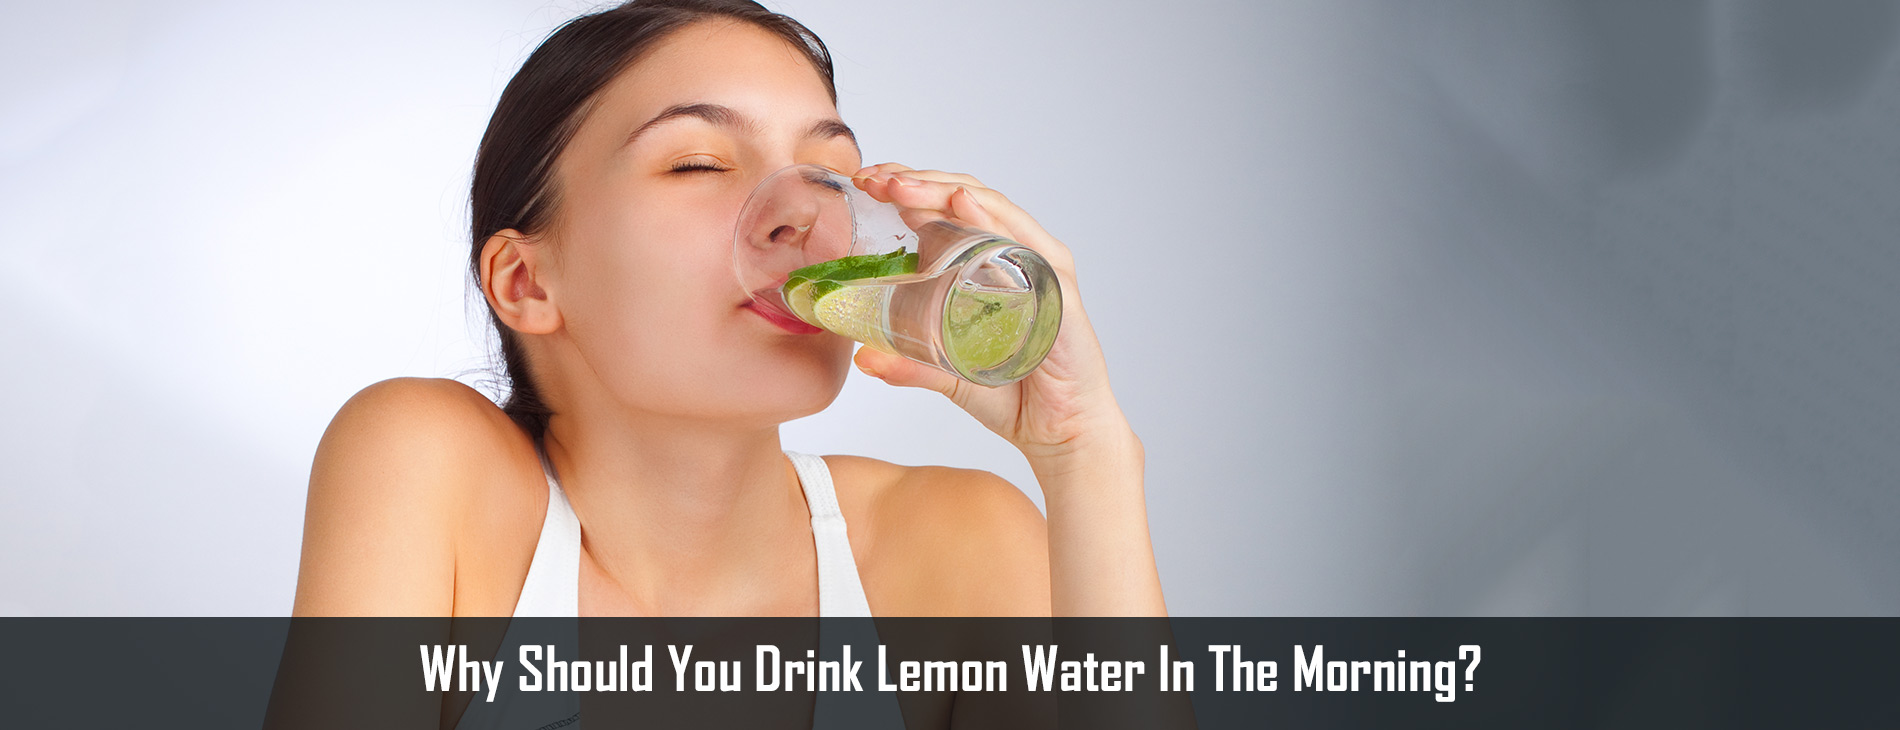 Why-Should-You-Drink-Lemon-Water-In-The-Morning